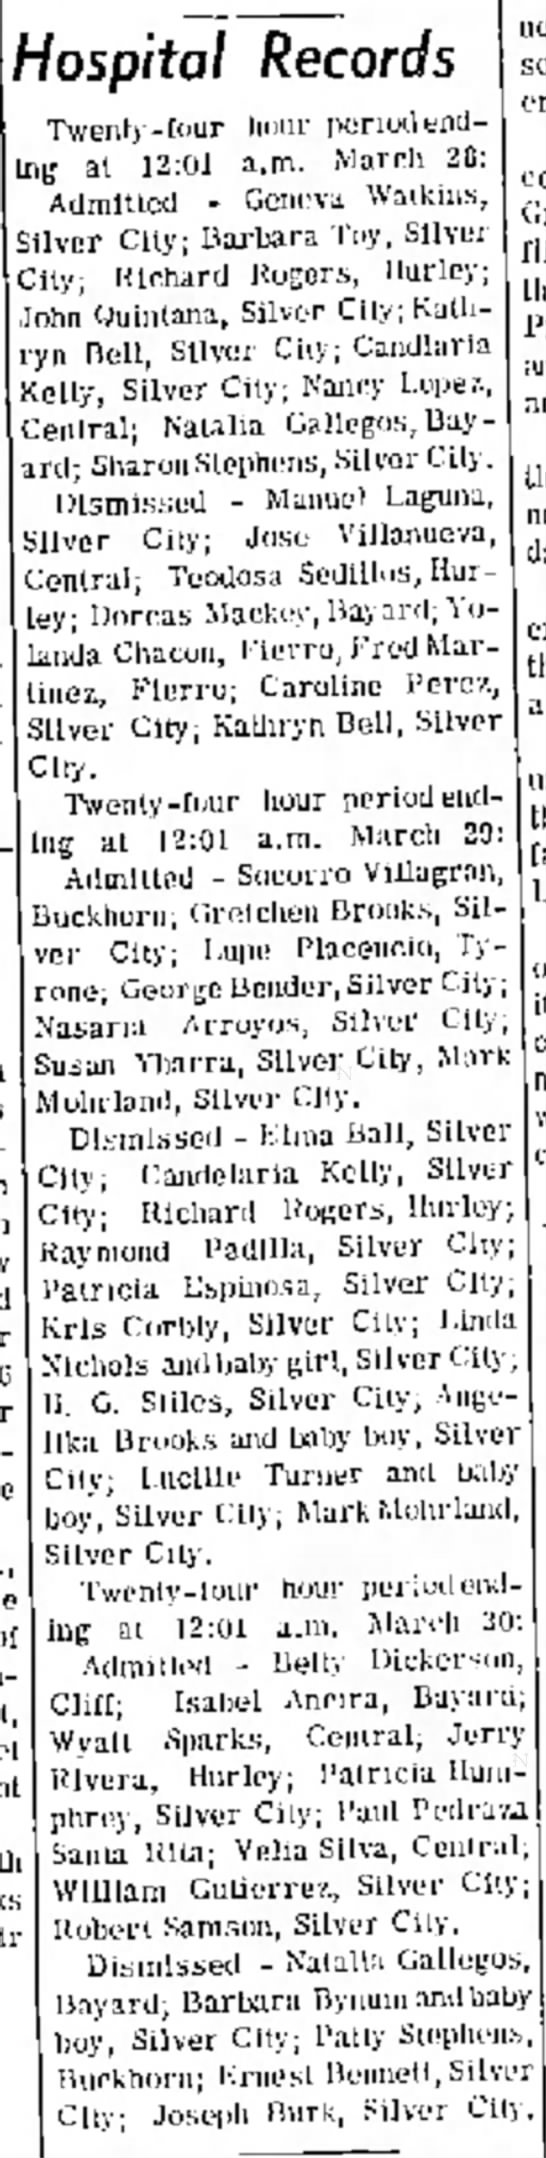 Hospital Records; Elma Ball listed, Silver City Daily Press, Silver City, New Mexico, March 1970 -